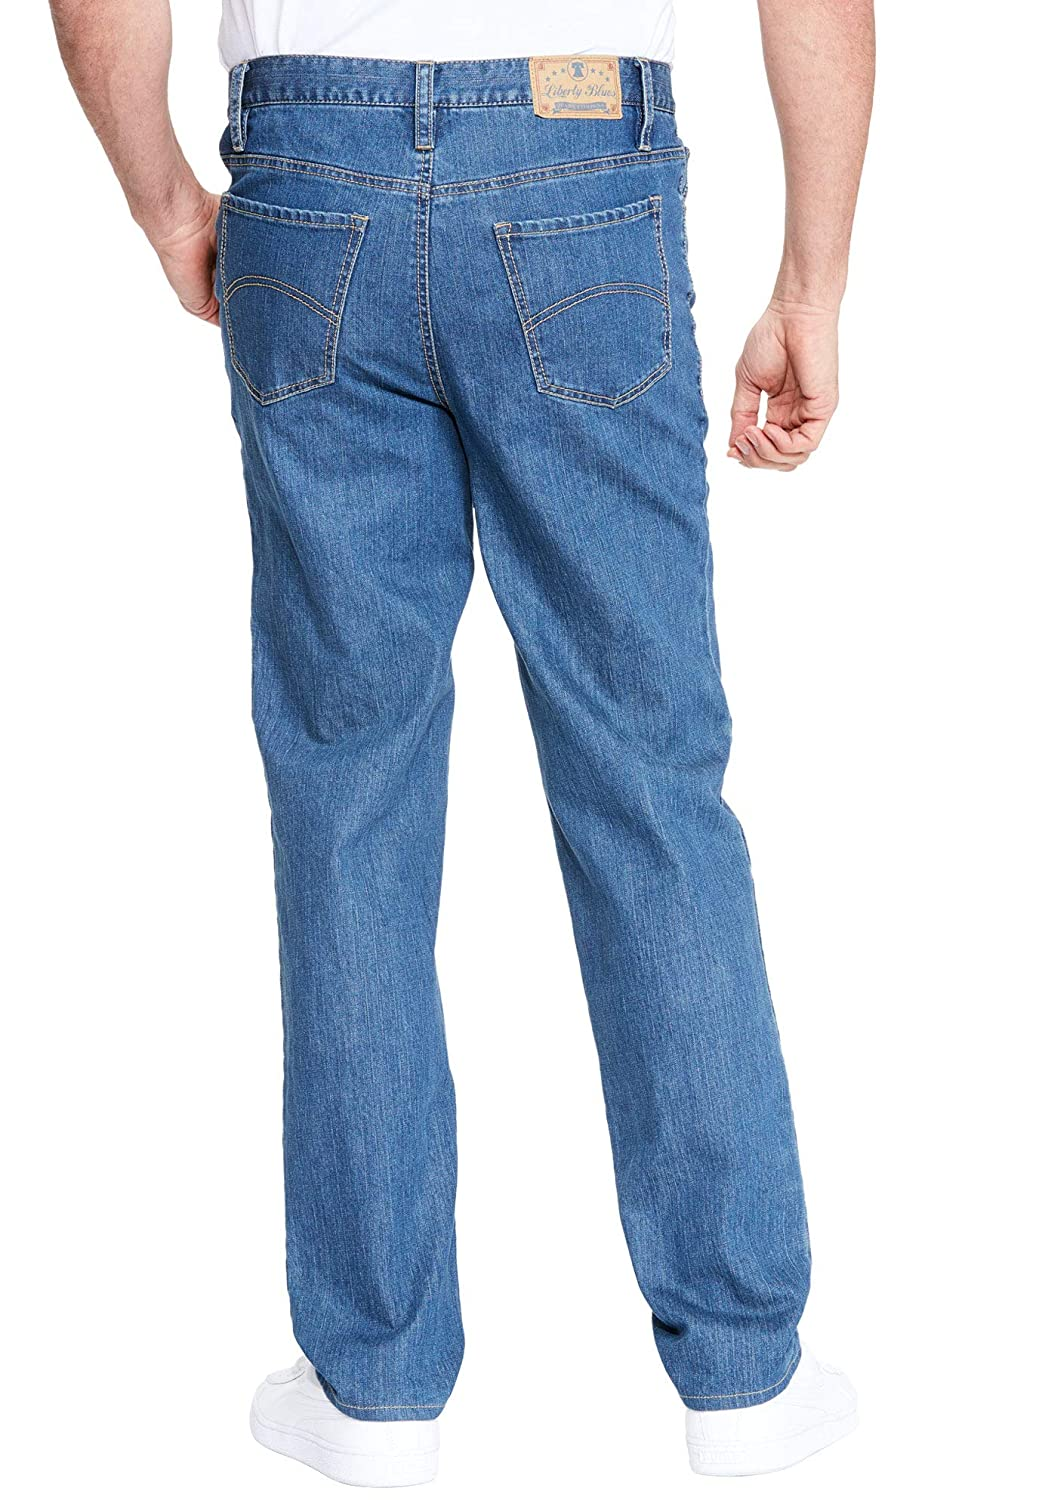 Liberty Blues Mens Big /& Tall Relaxed Fit 5-Pocket Stretch Jeans